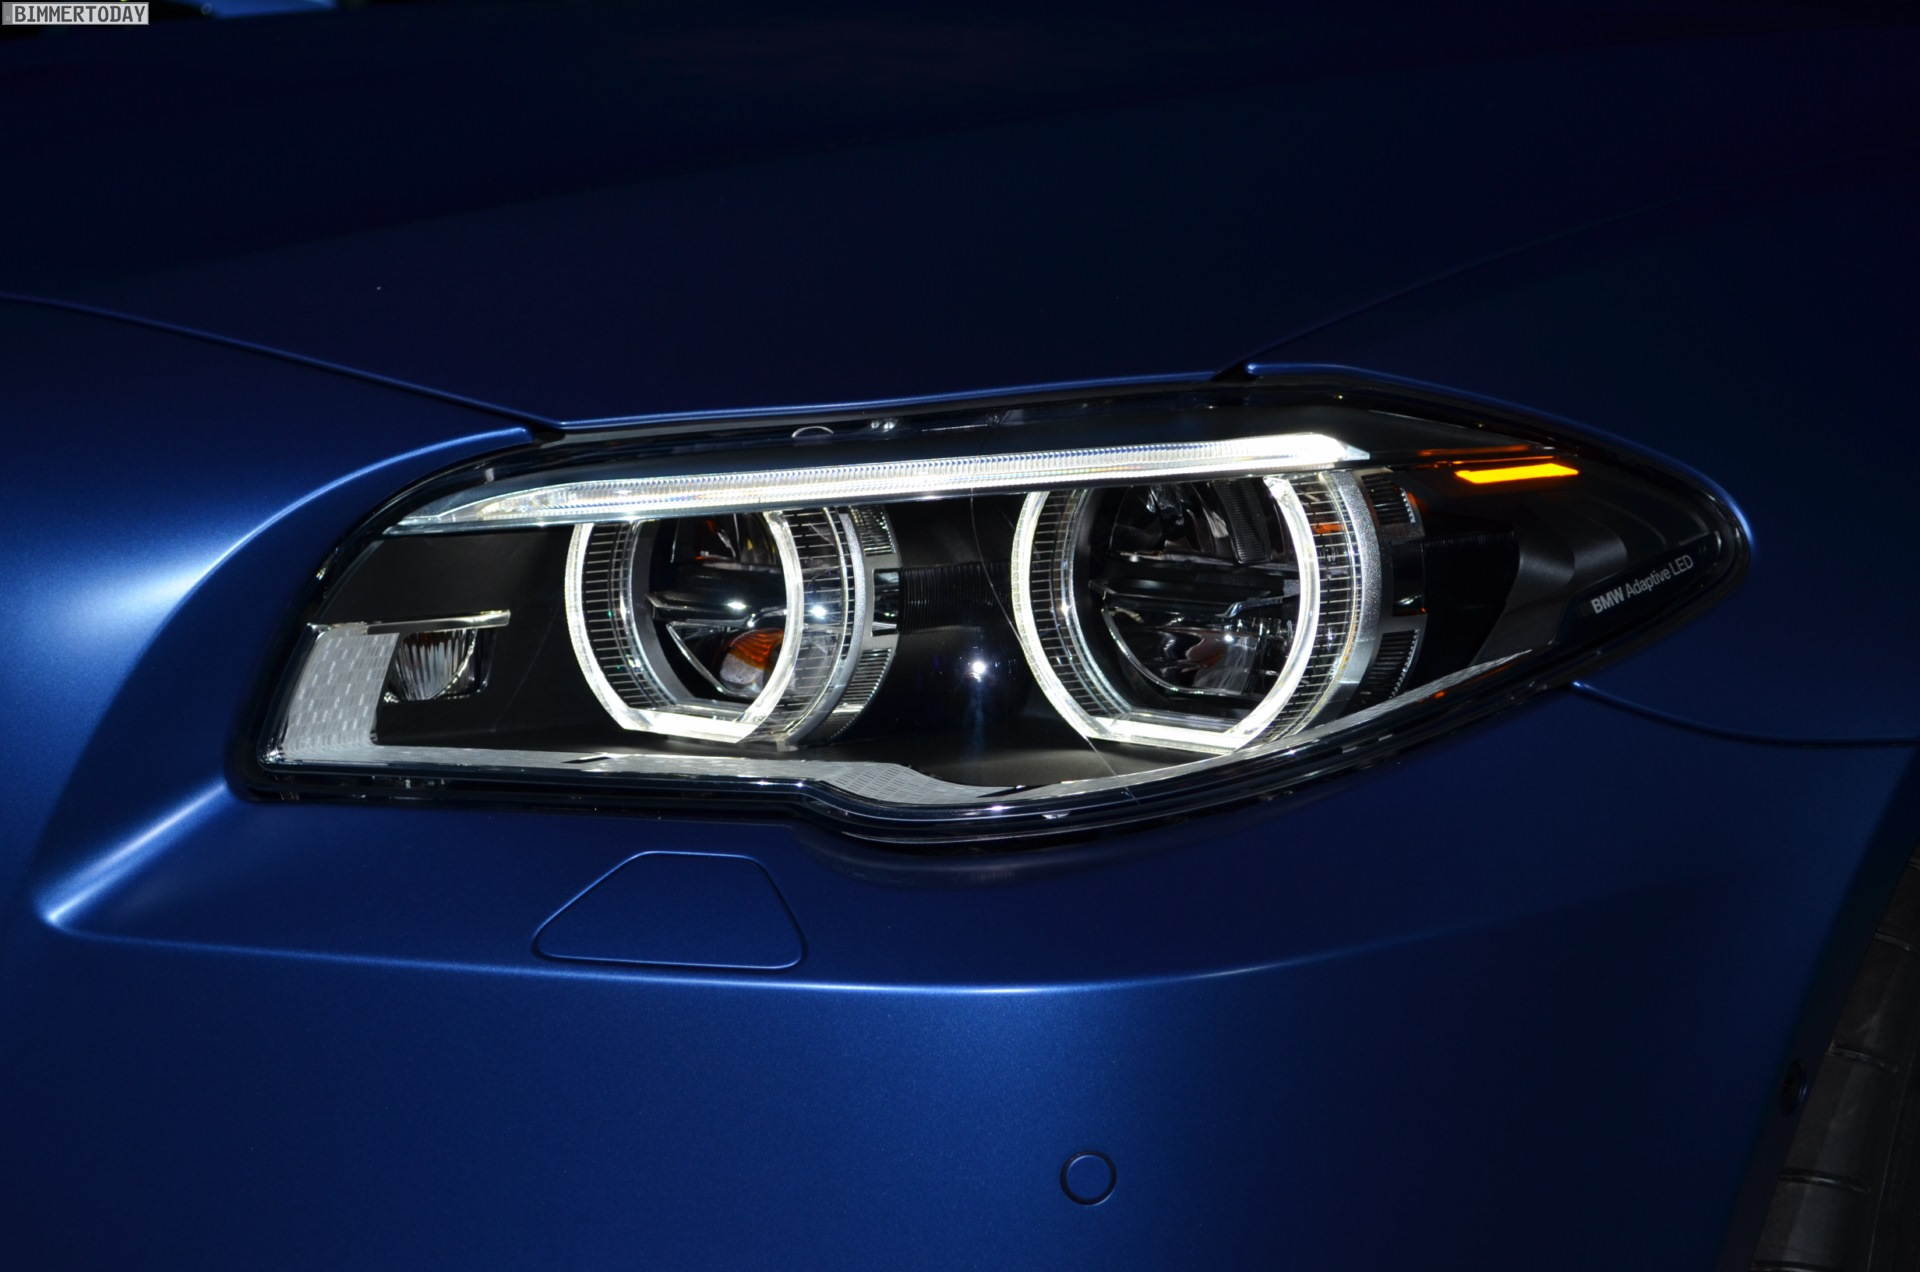 Bmw M5 Facelift With 575 Hp Makes Debut At 2013 M Festival